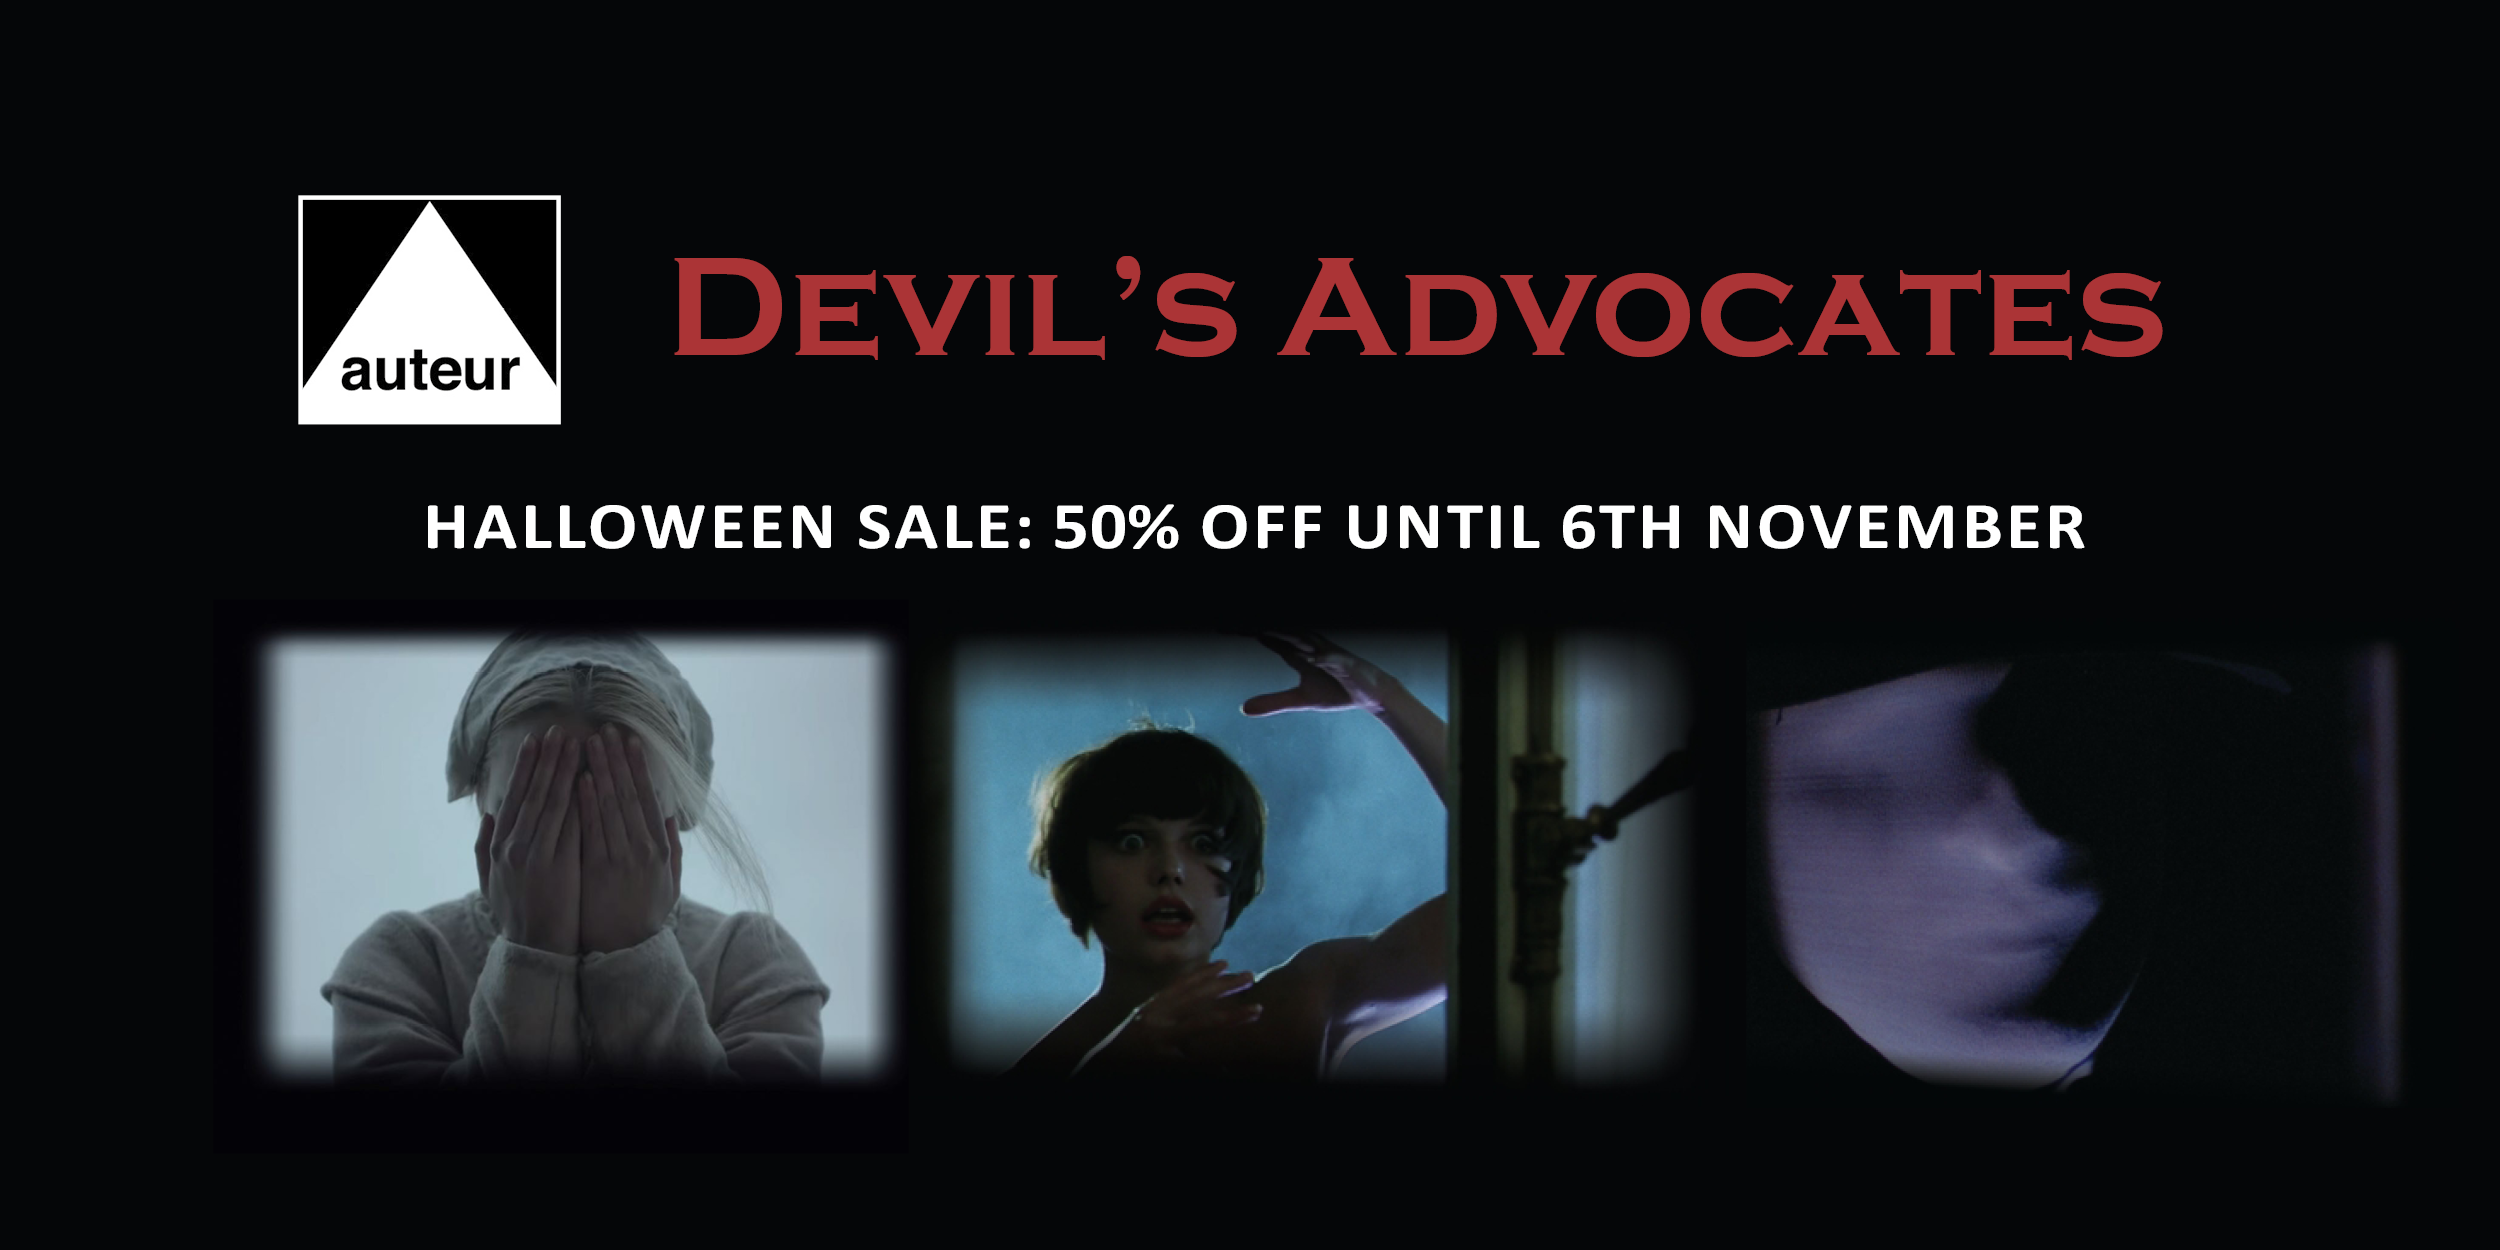 Devil's Advocates Halloween sale